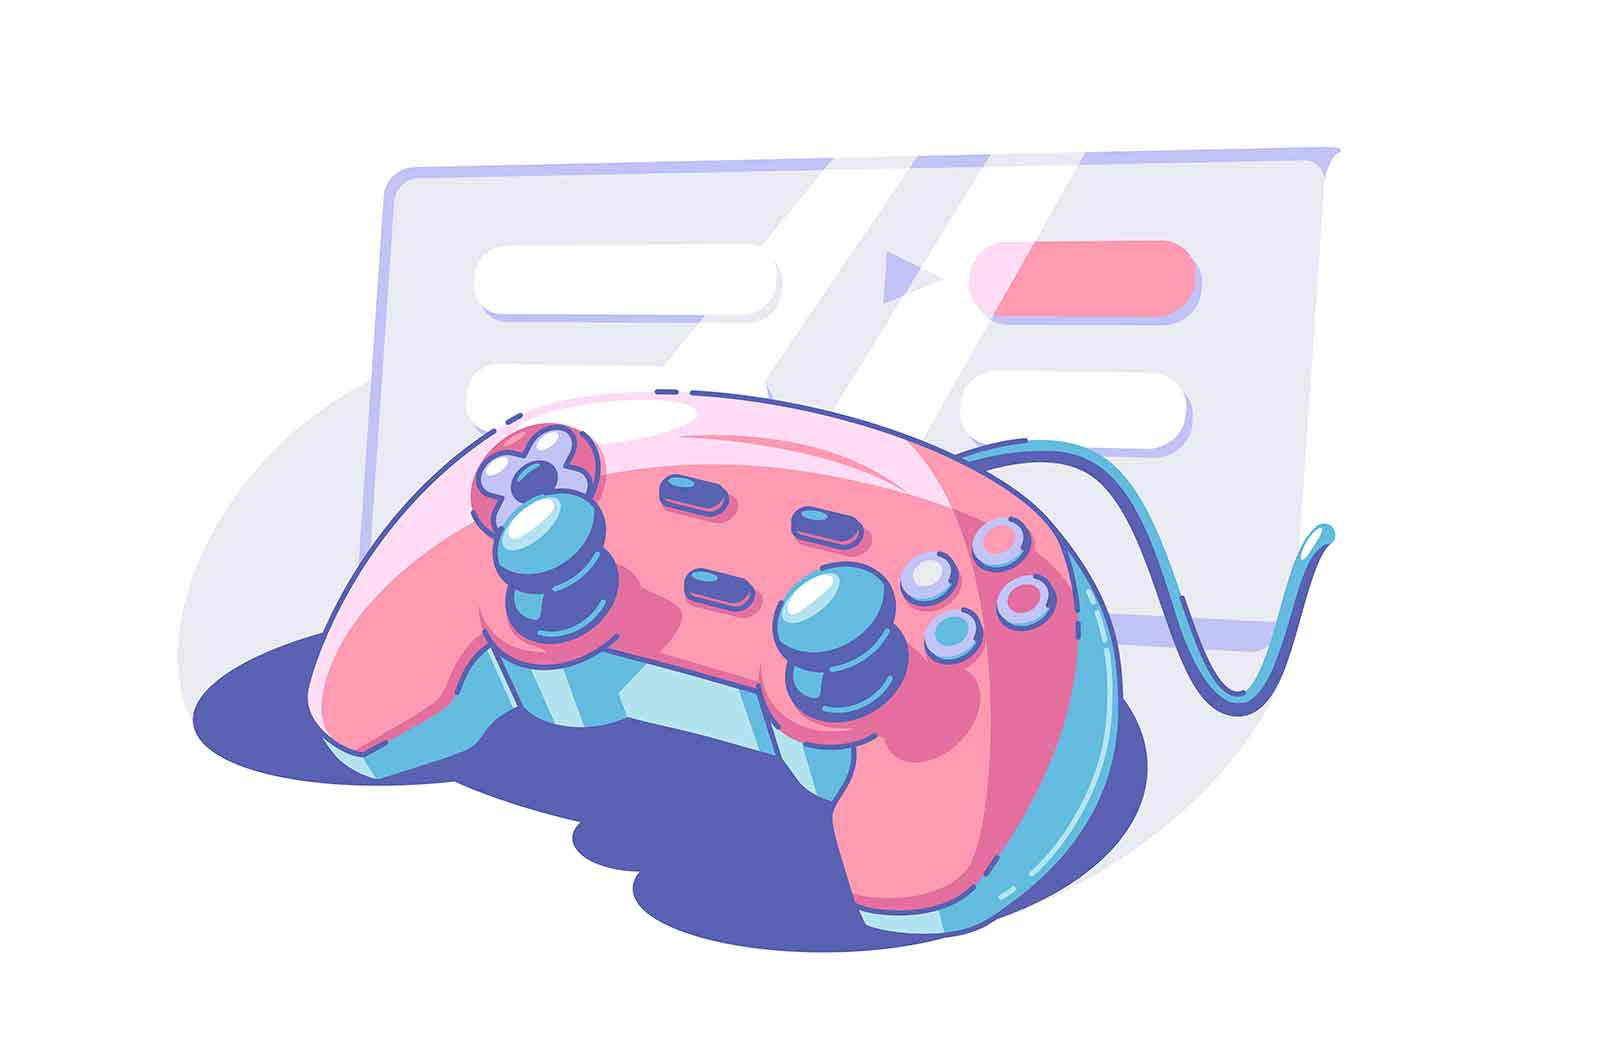 Bright gamepad with knobs vector illustration. Joystick or controller flat style. Fun pastime. Gaming and entertainment concept. Isolated on white background